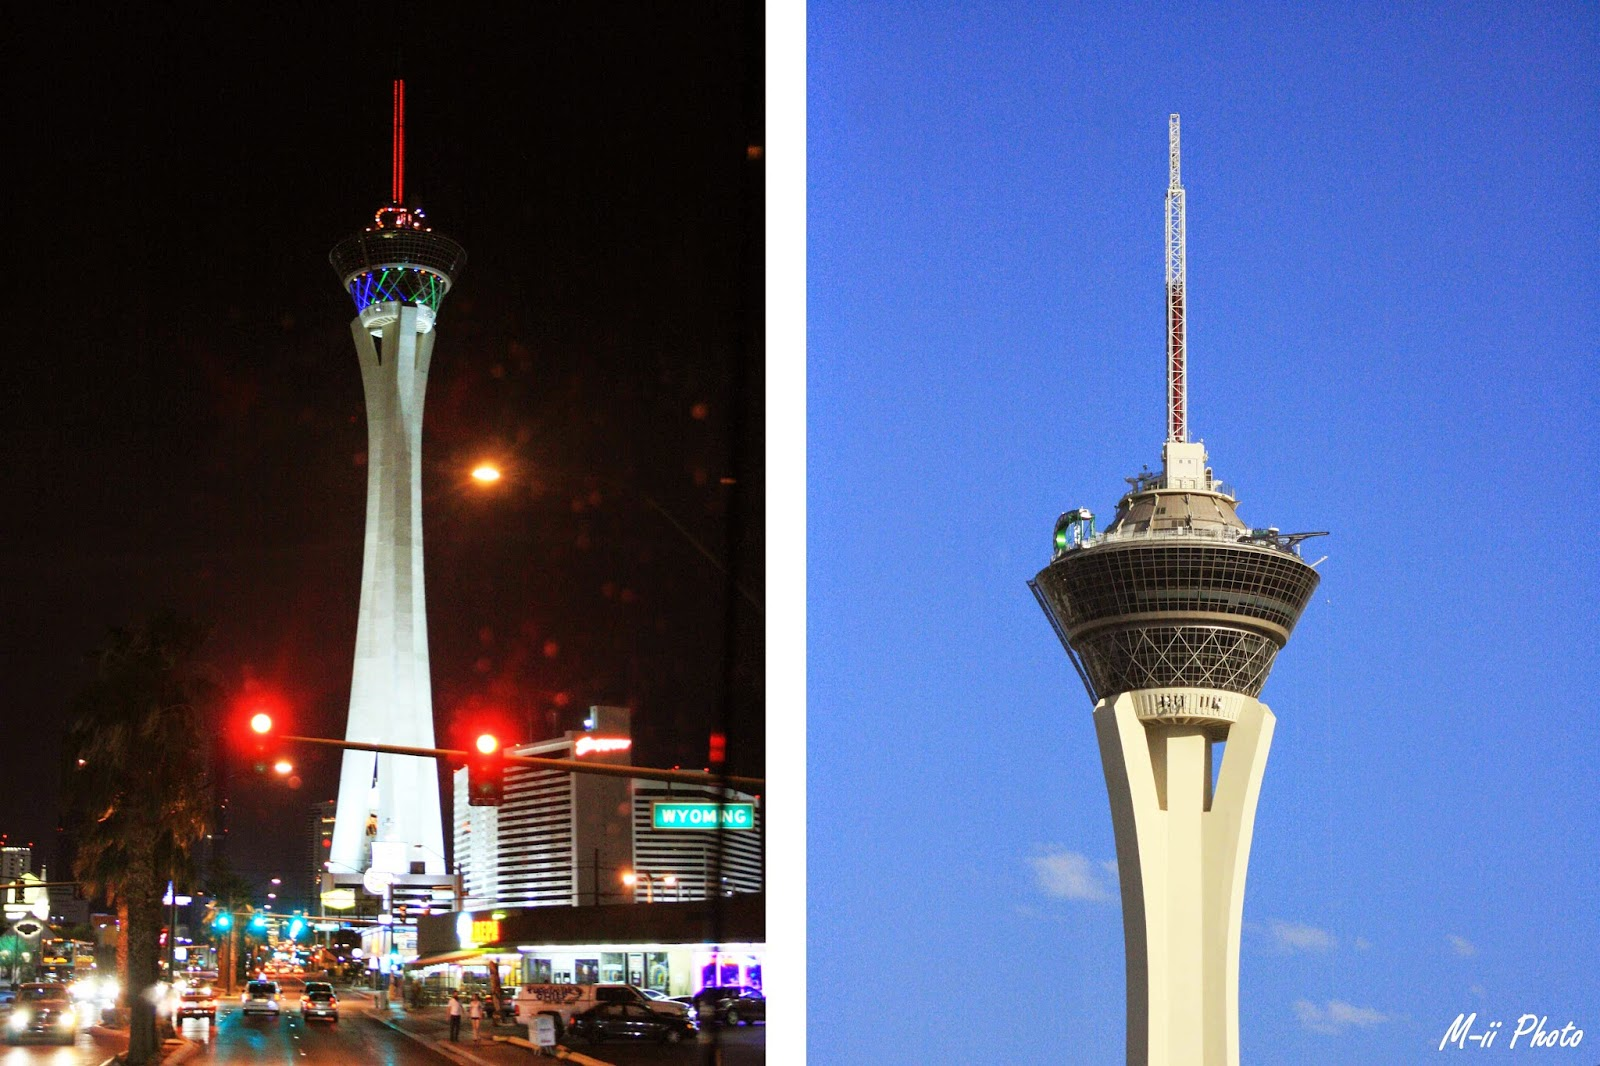 M-ii Photo : Las Vegas Stratosphere Tower